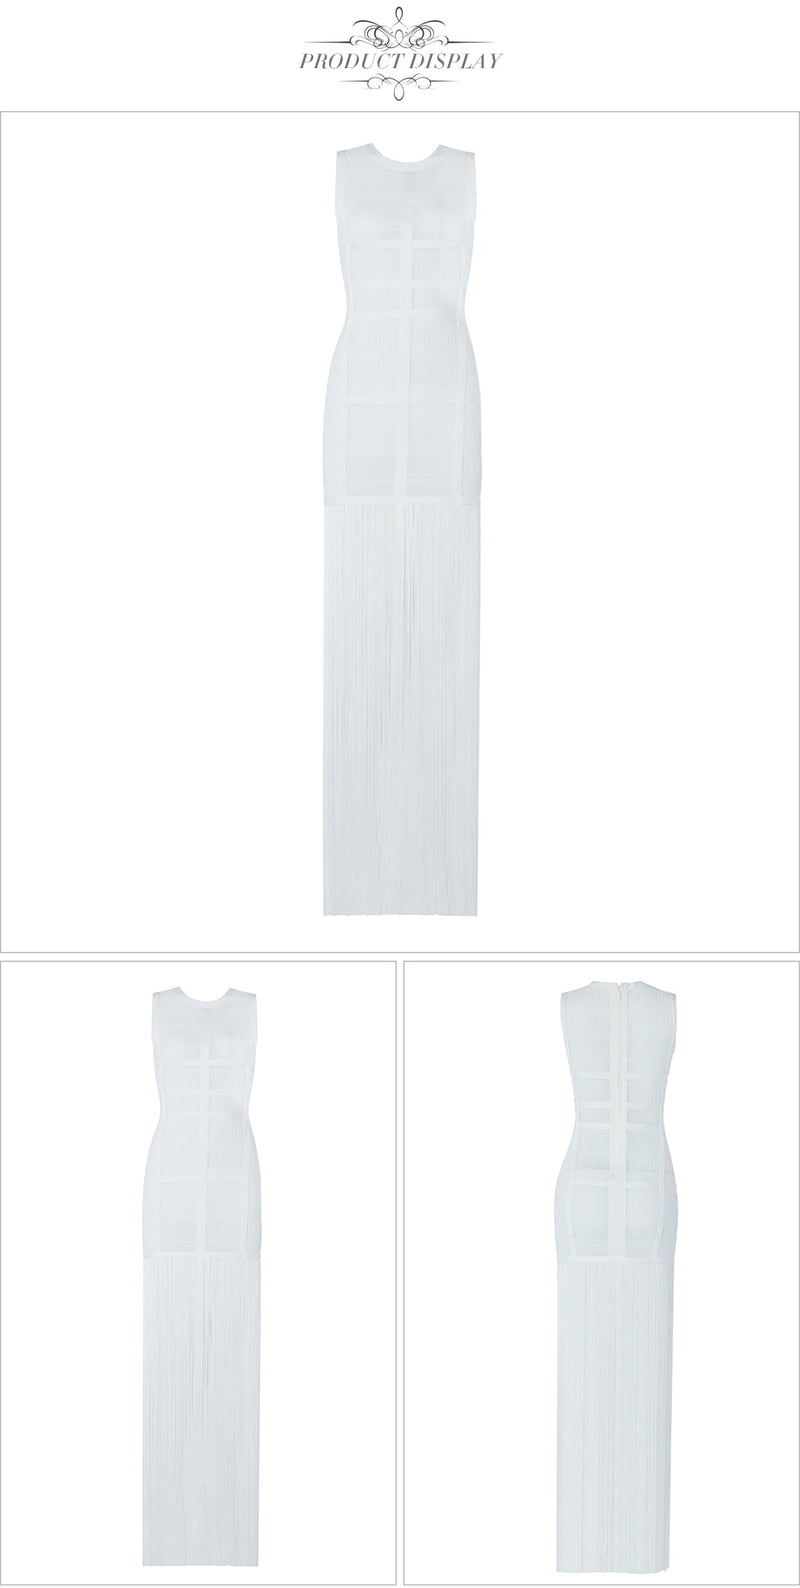 WHITE TASSLE MAXI DRESS - Revossa